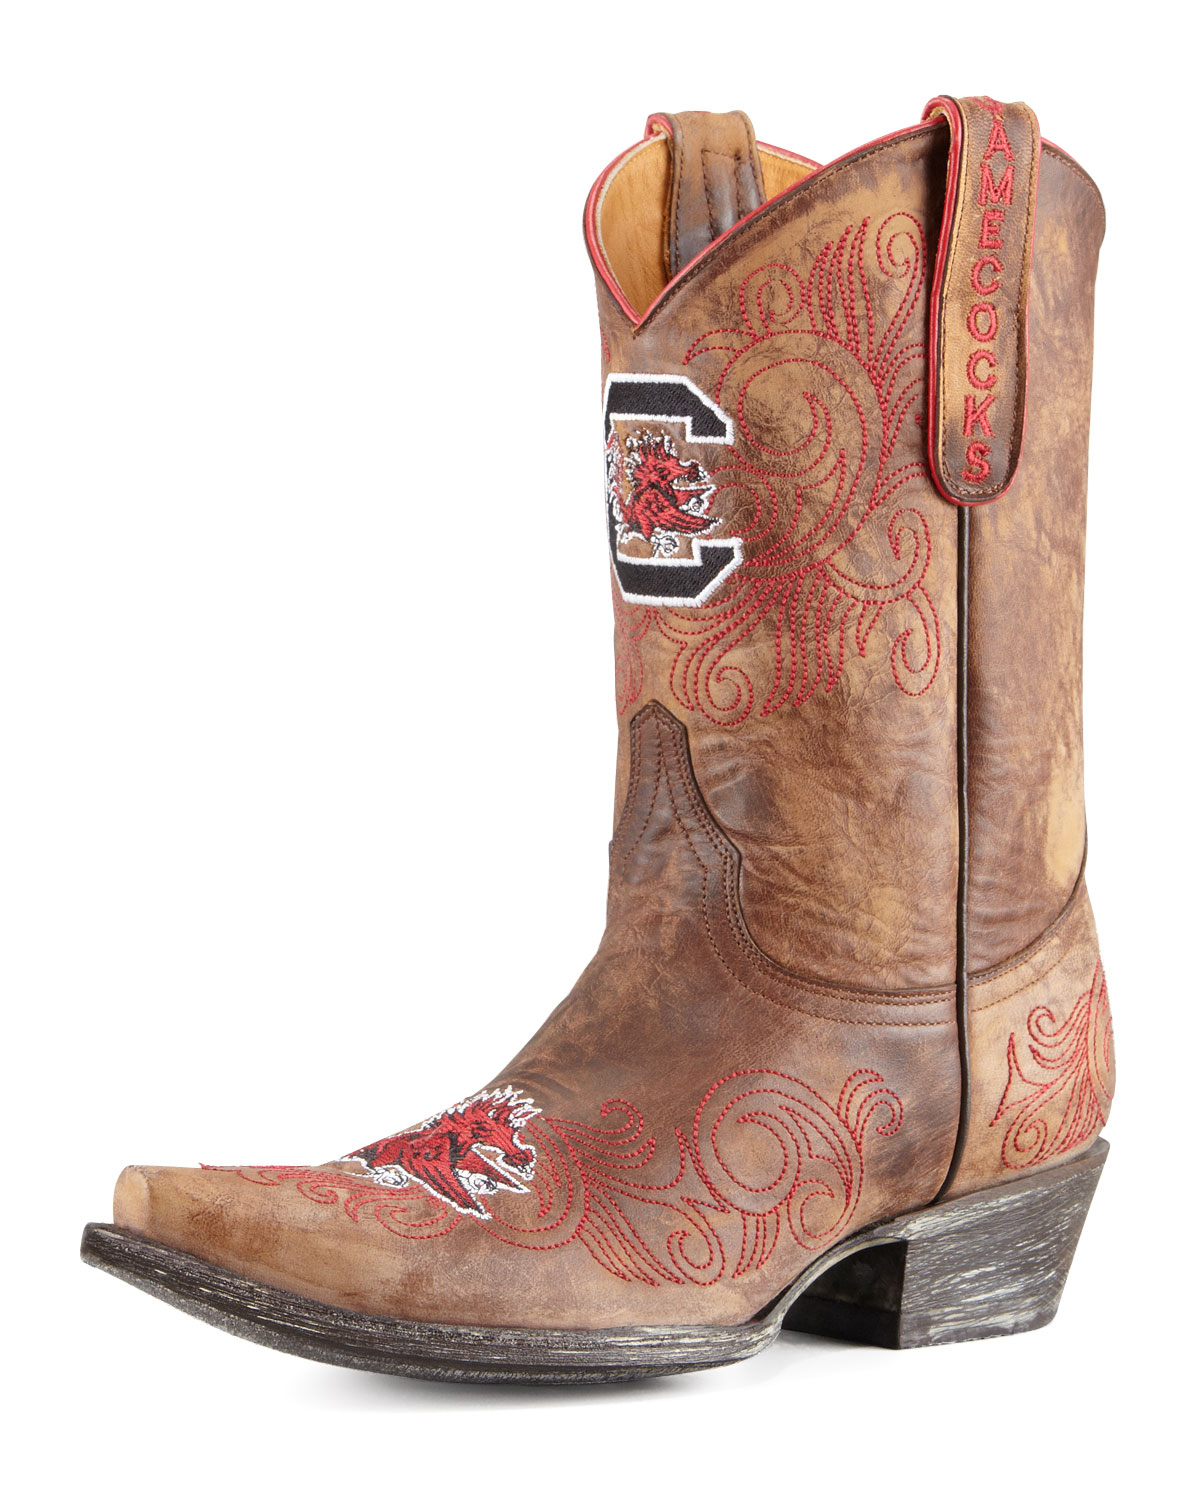 University of South Carolina Short Gameday Boots, Brass   Gameday Boot Company